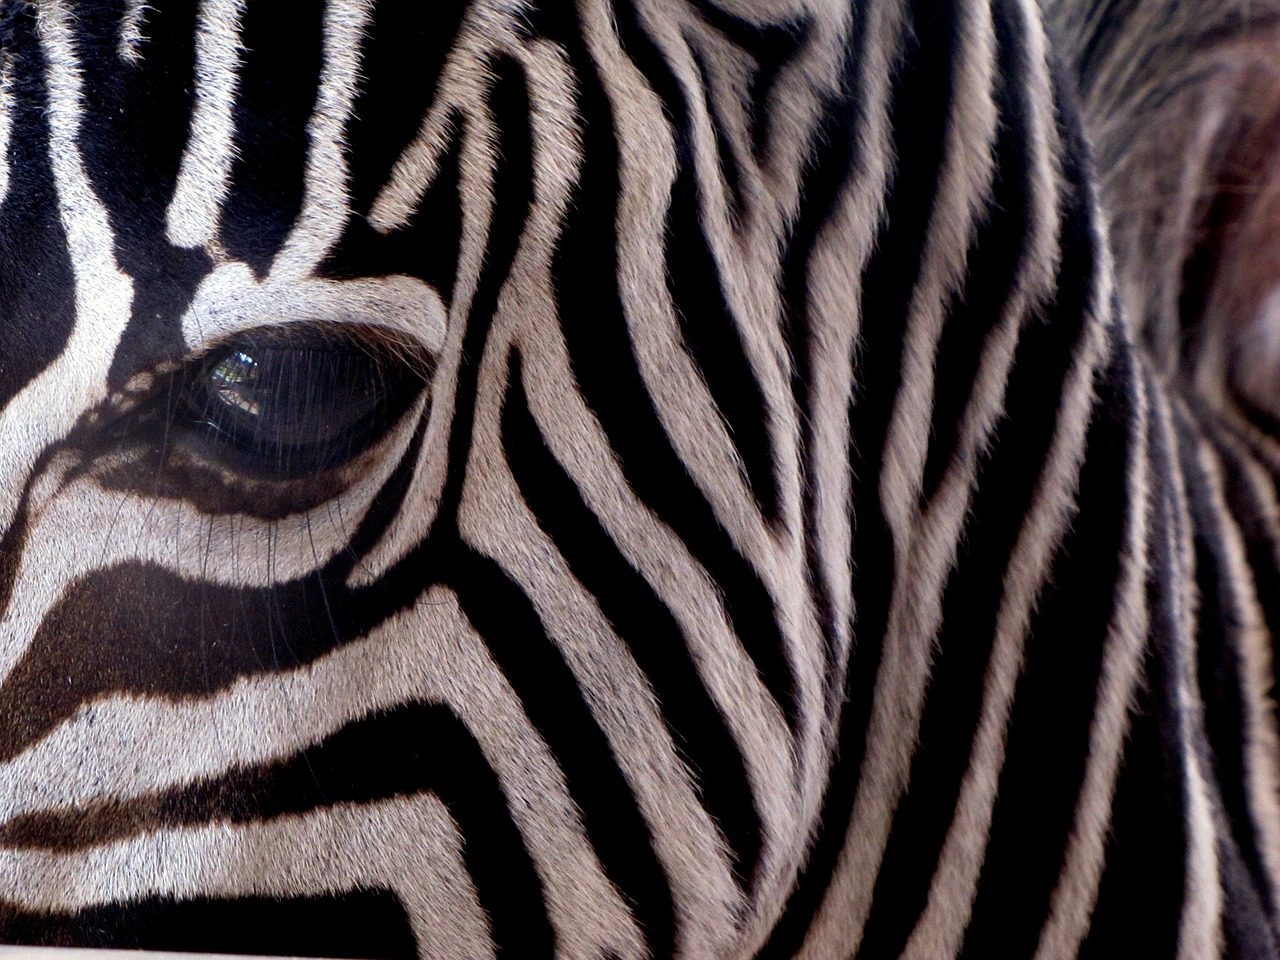 zebra,stripes,mammal,animal,african,africa,striped,exotic,head,face,eye,stripe,horse,free pictures, free photos, free images, royalty free, free illustrations, public domain